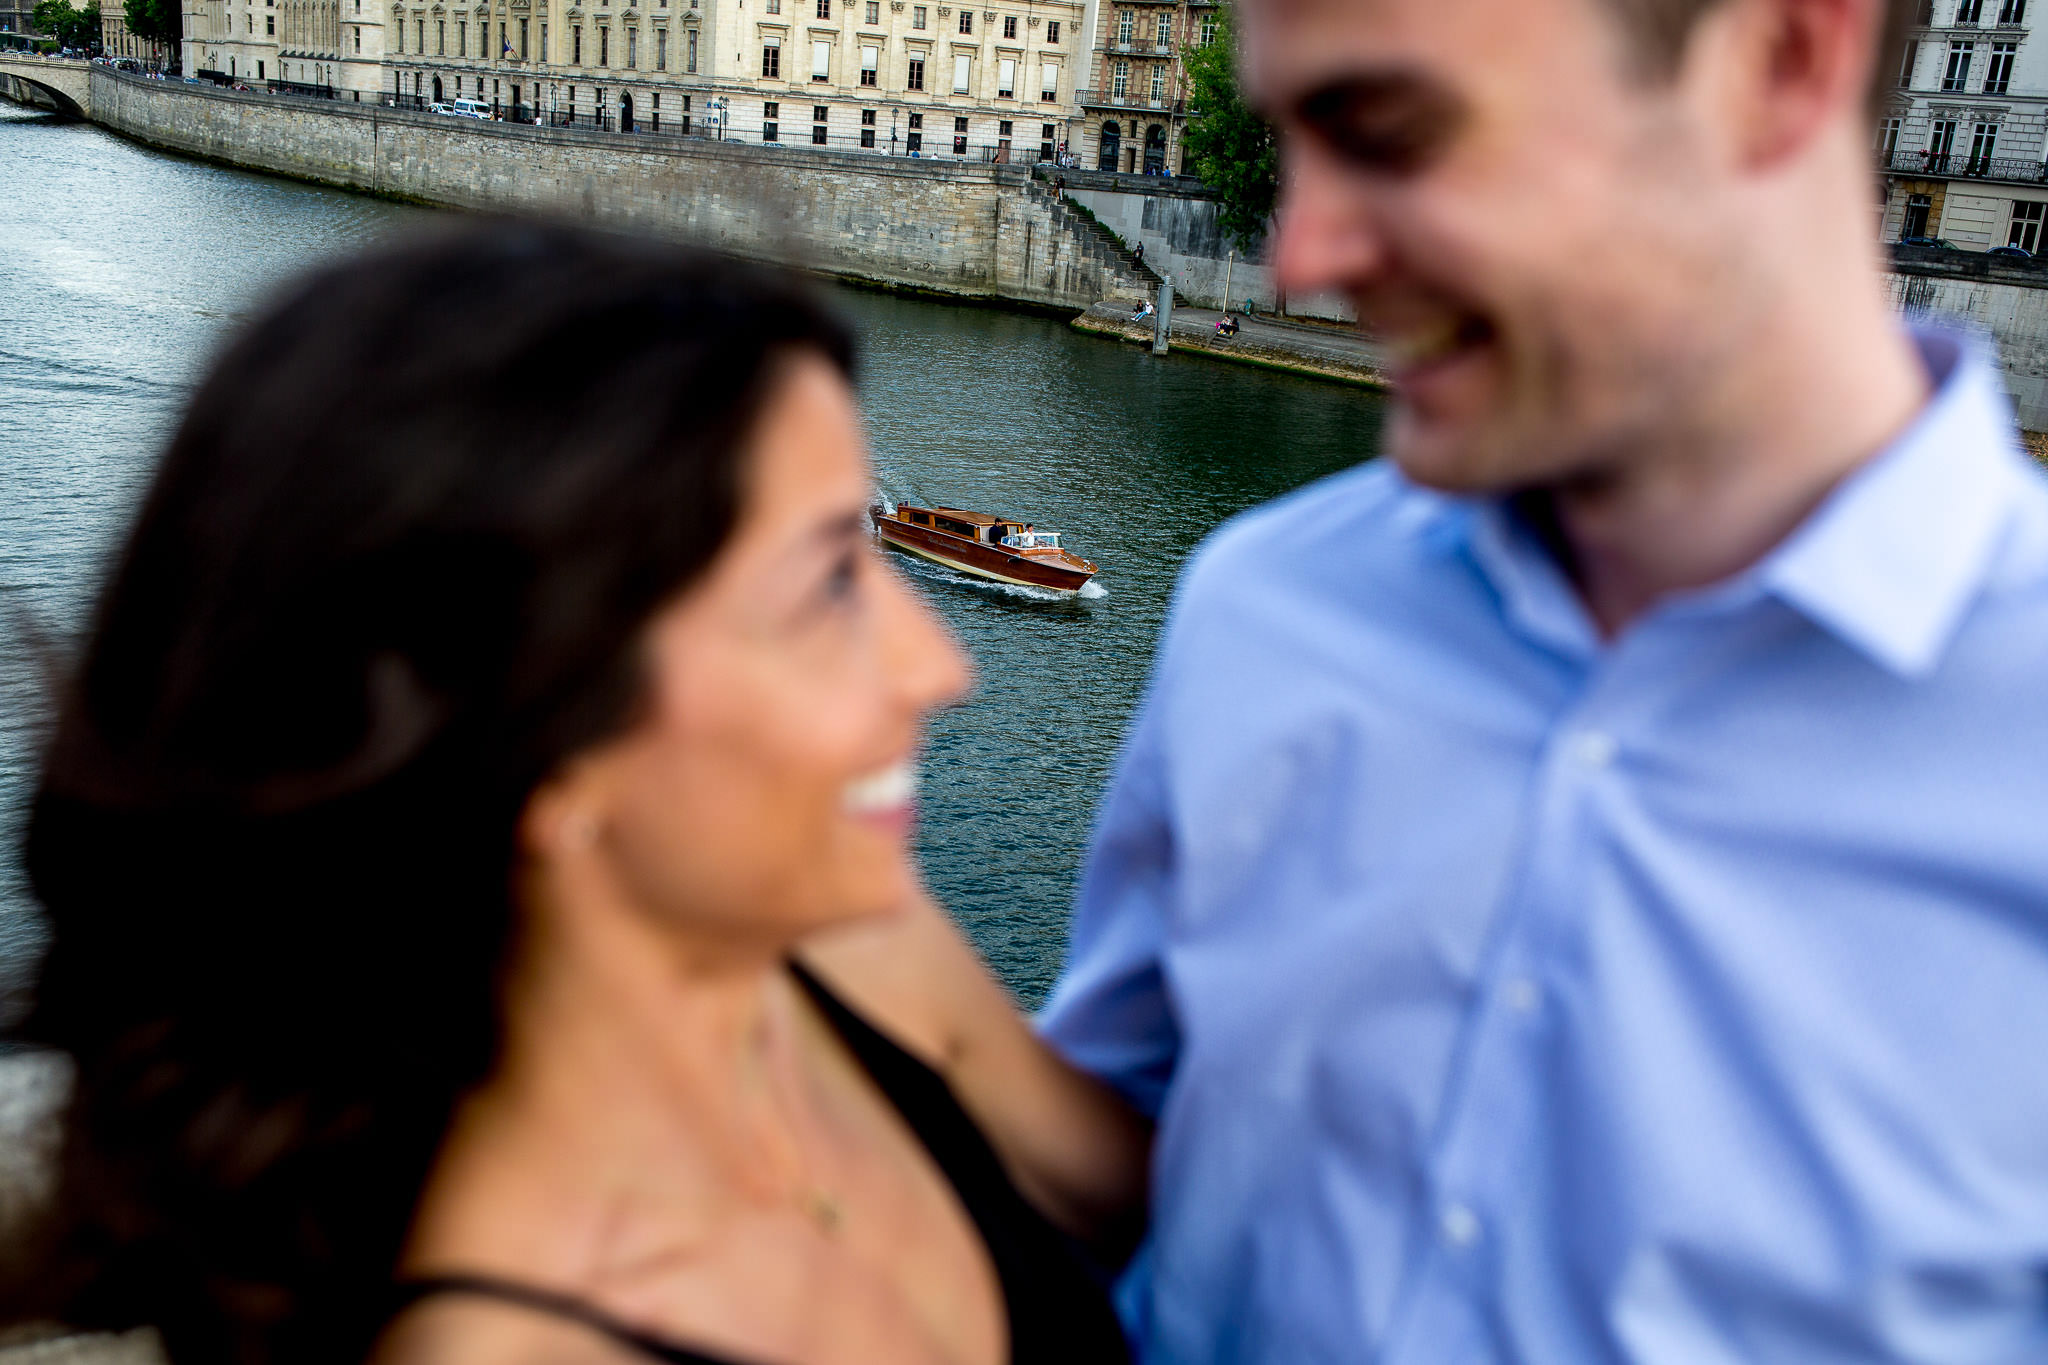 Engagement photo on oldest bridge in Paris France with boat in distance